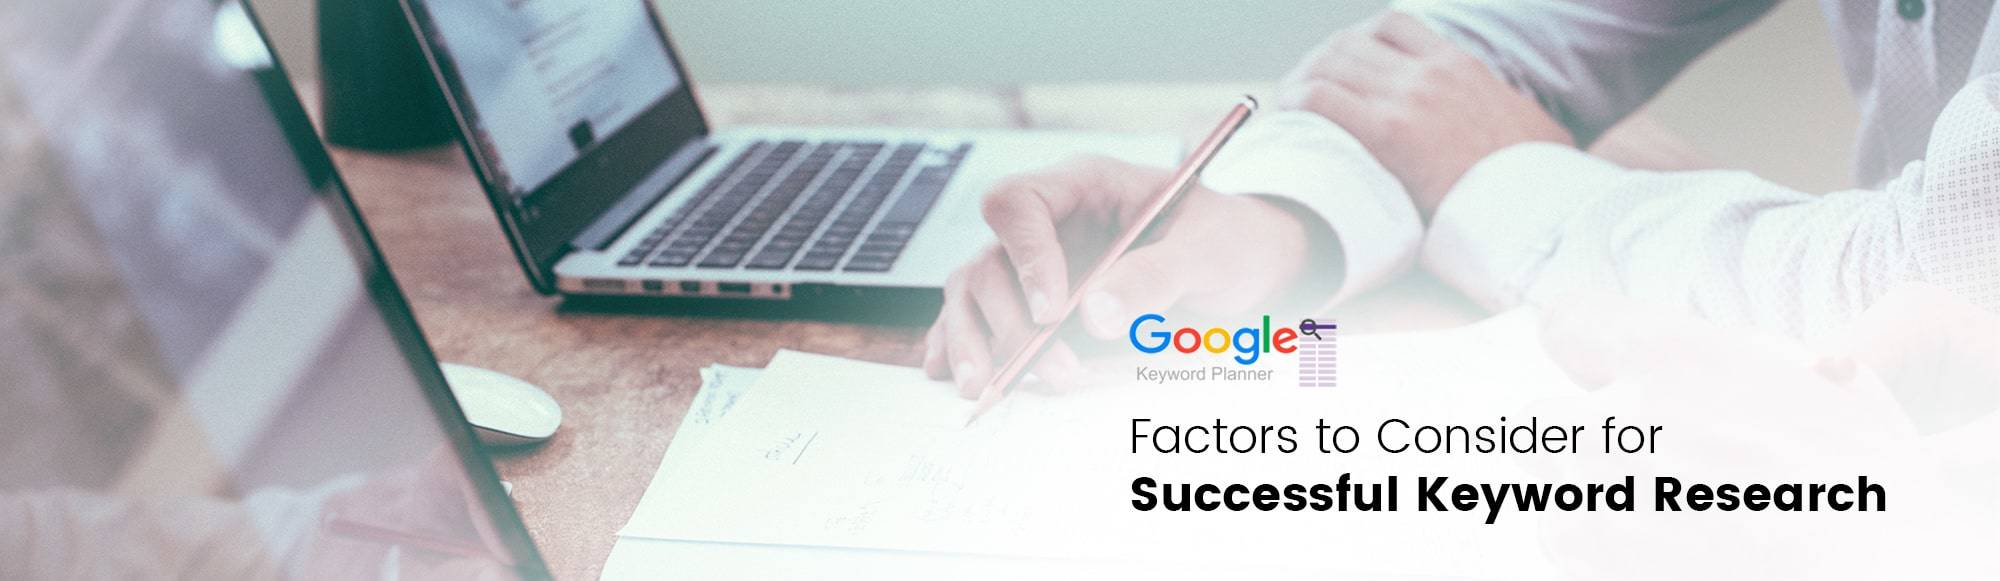 Factors to Consider for Successful Keyword Research